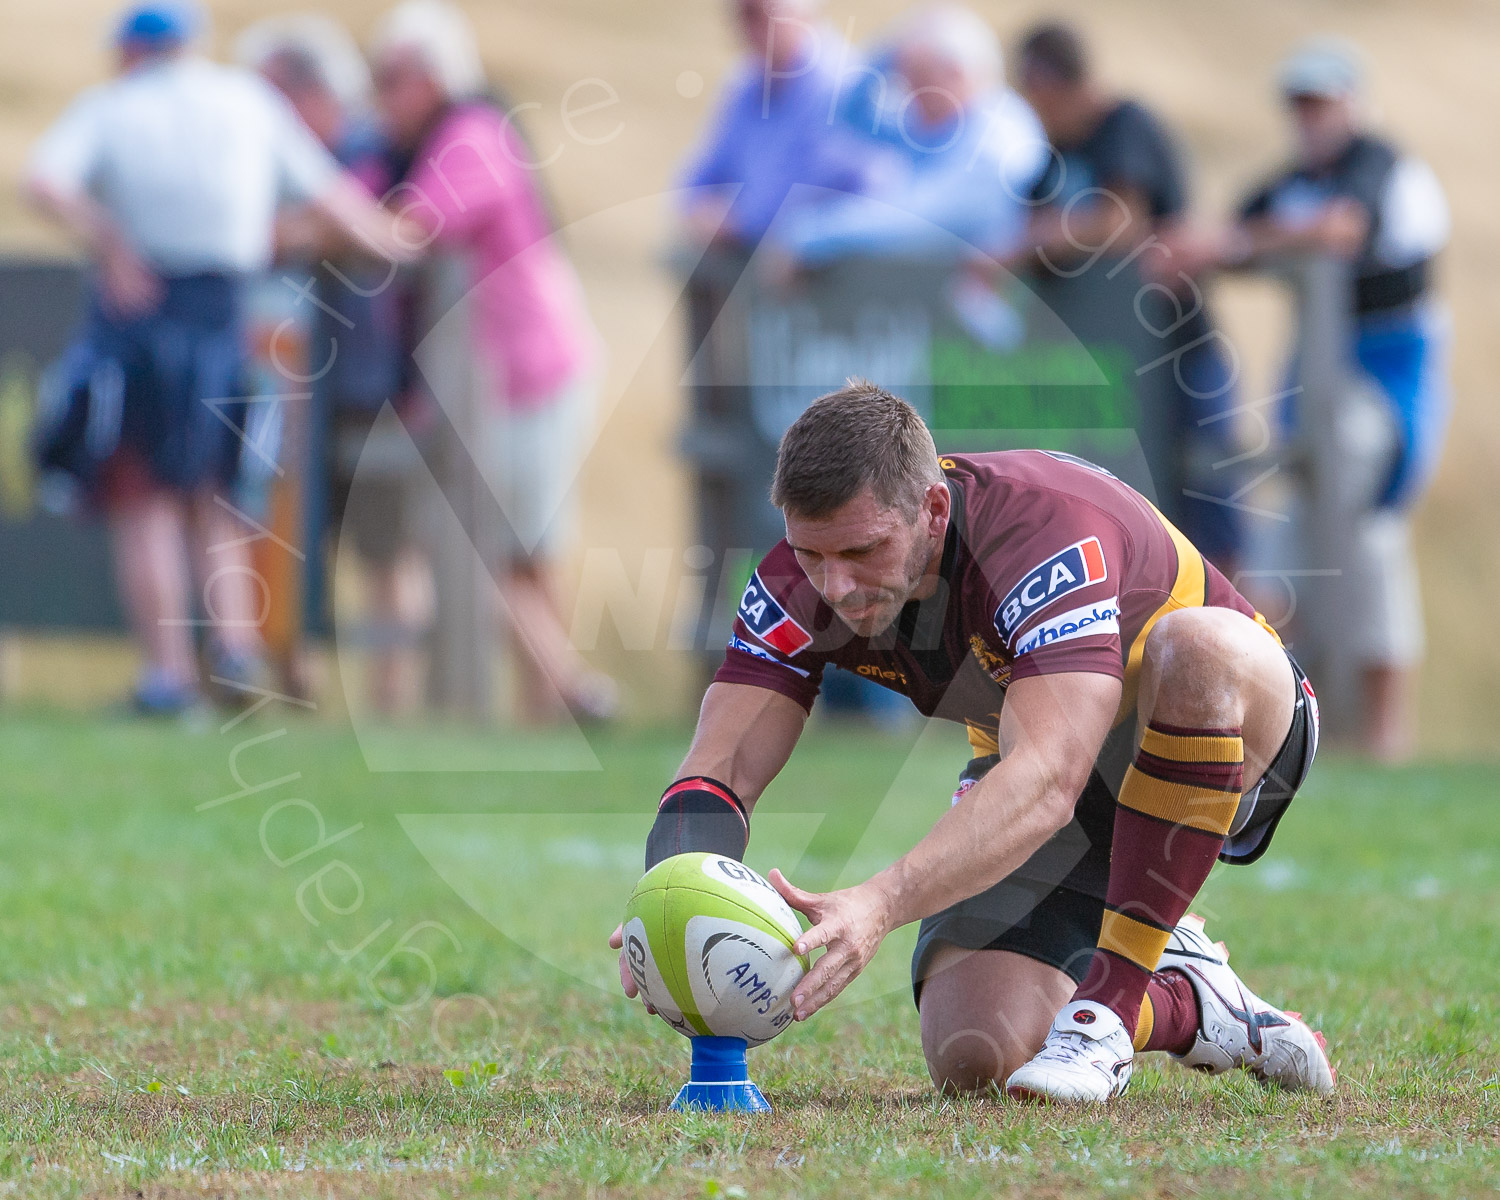 James Pritchard preparing to add to the tally (Photo: Iain Frankish, Actuance Photography)